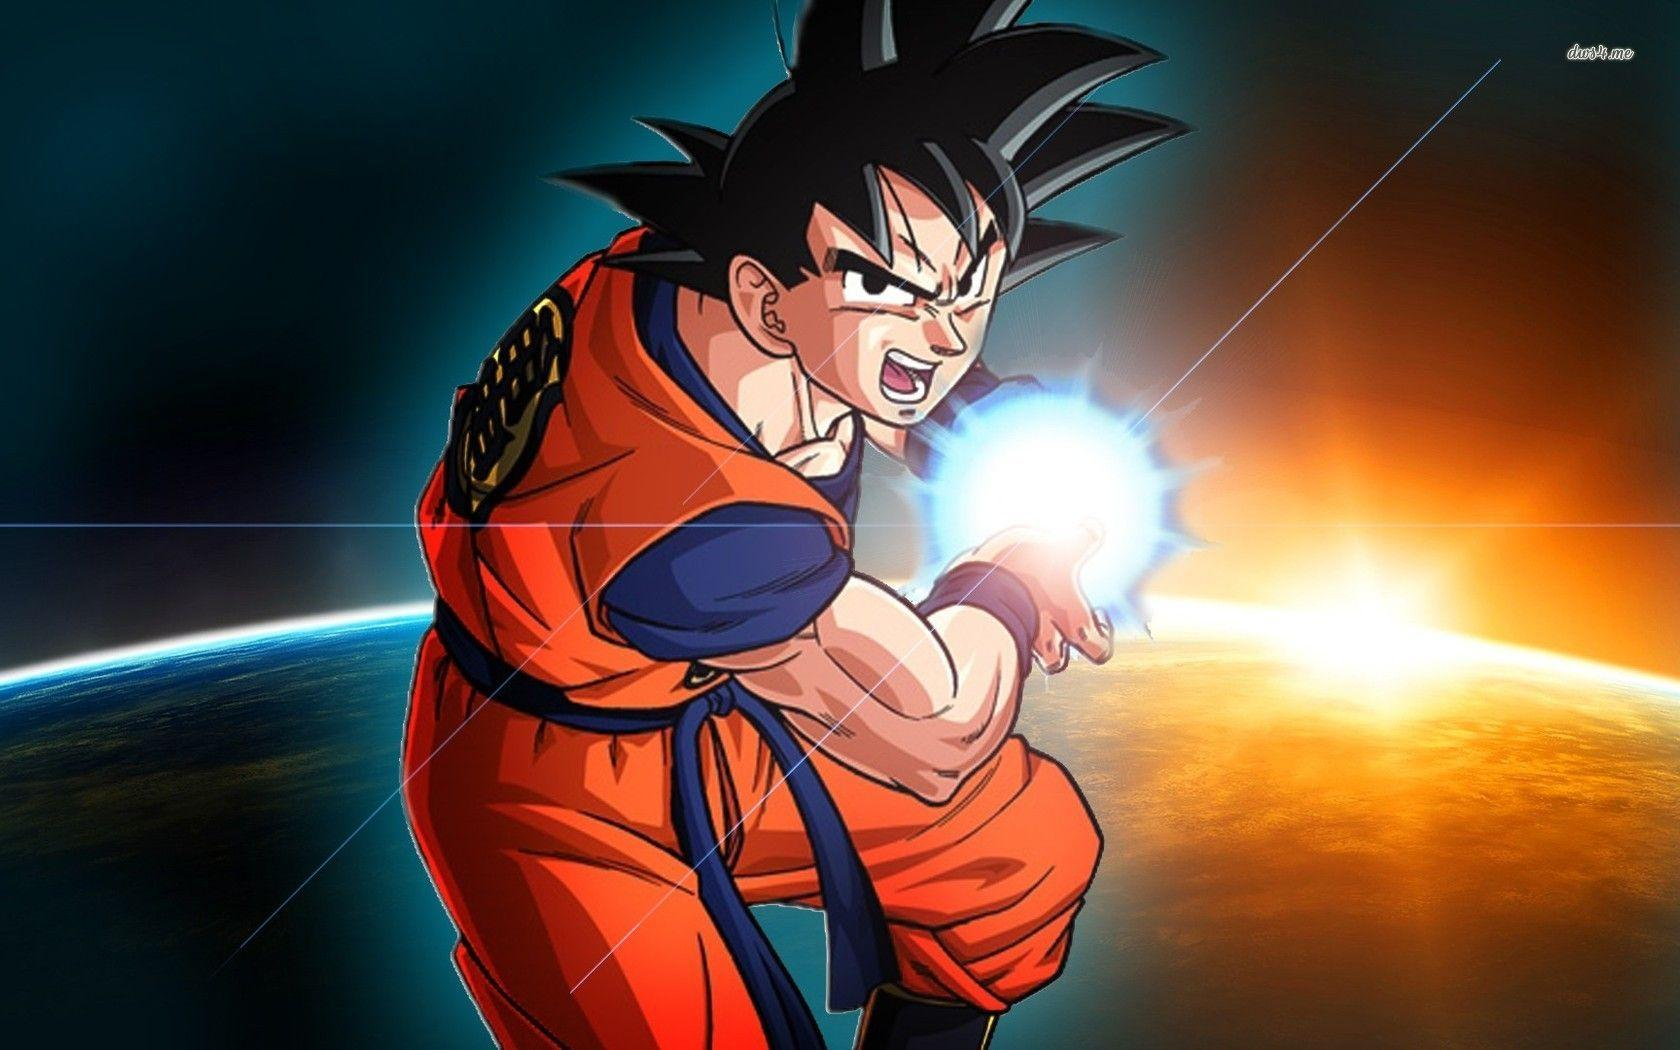 dragon ball z goku wallpaper hd - www.wallpaper-free-download.com